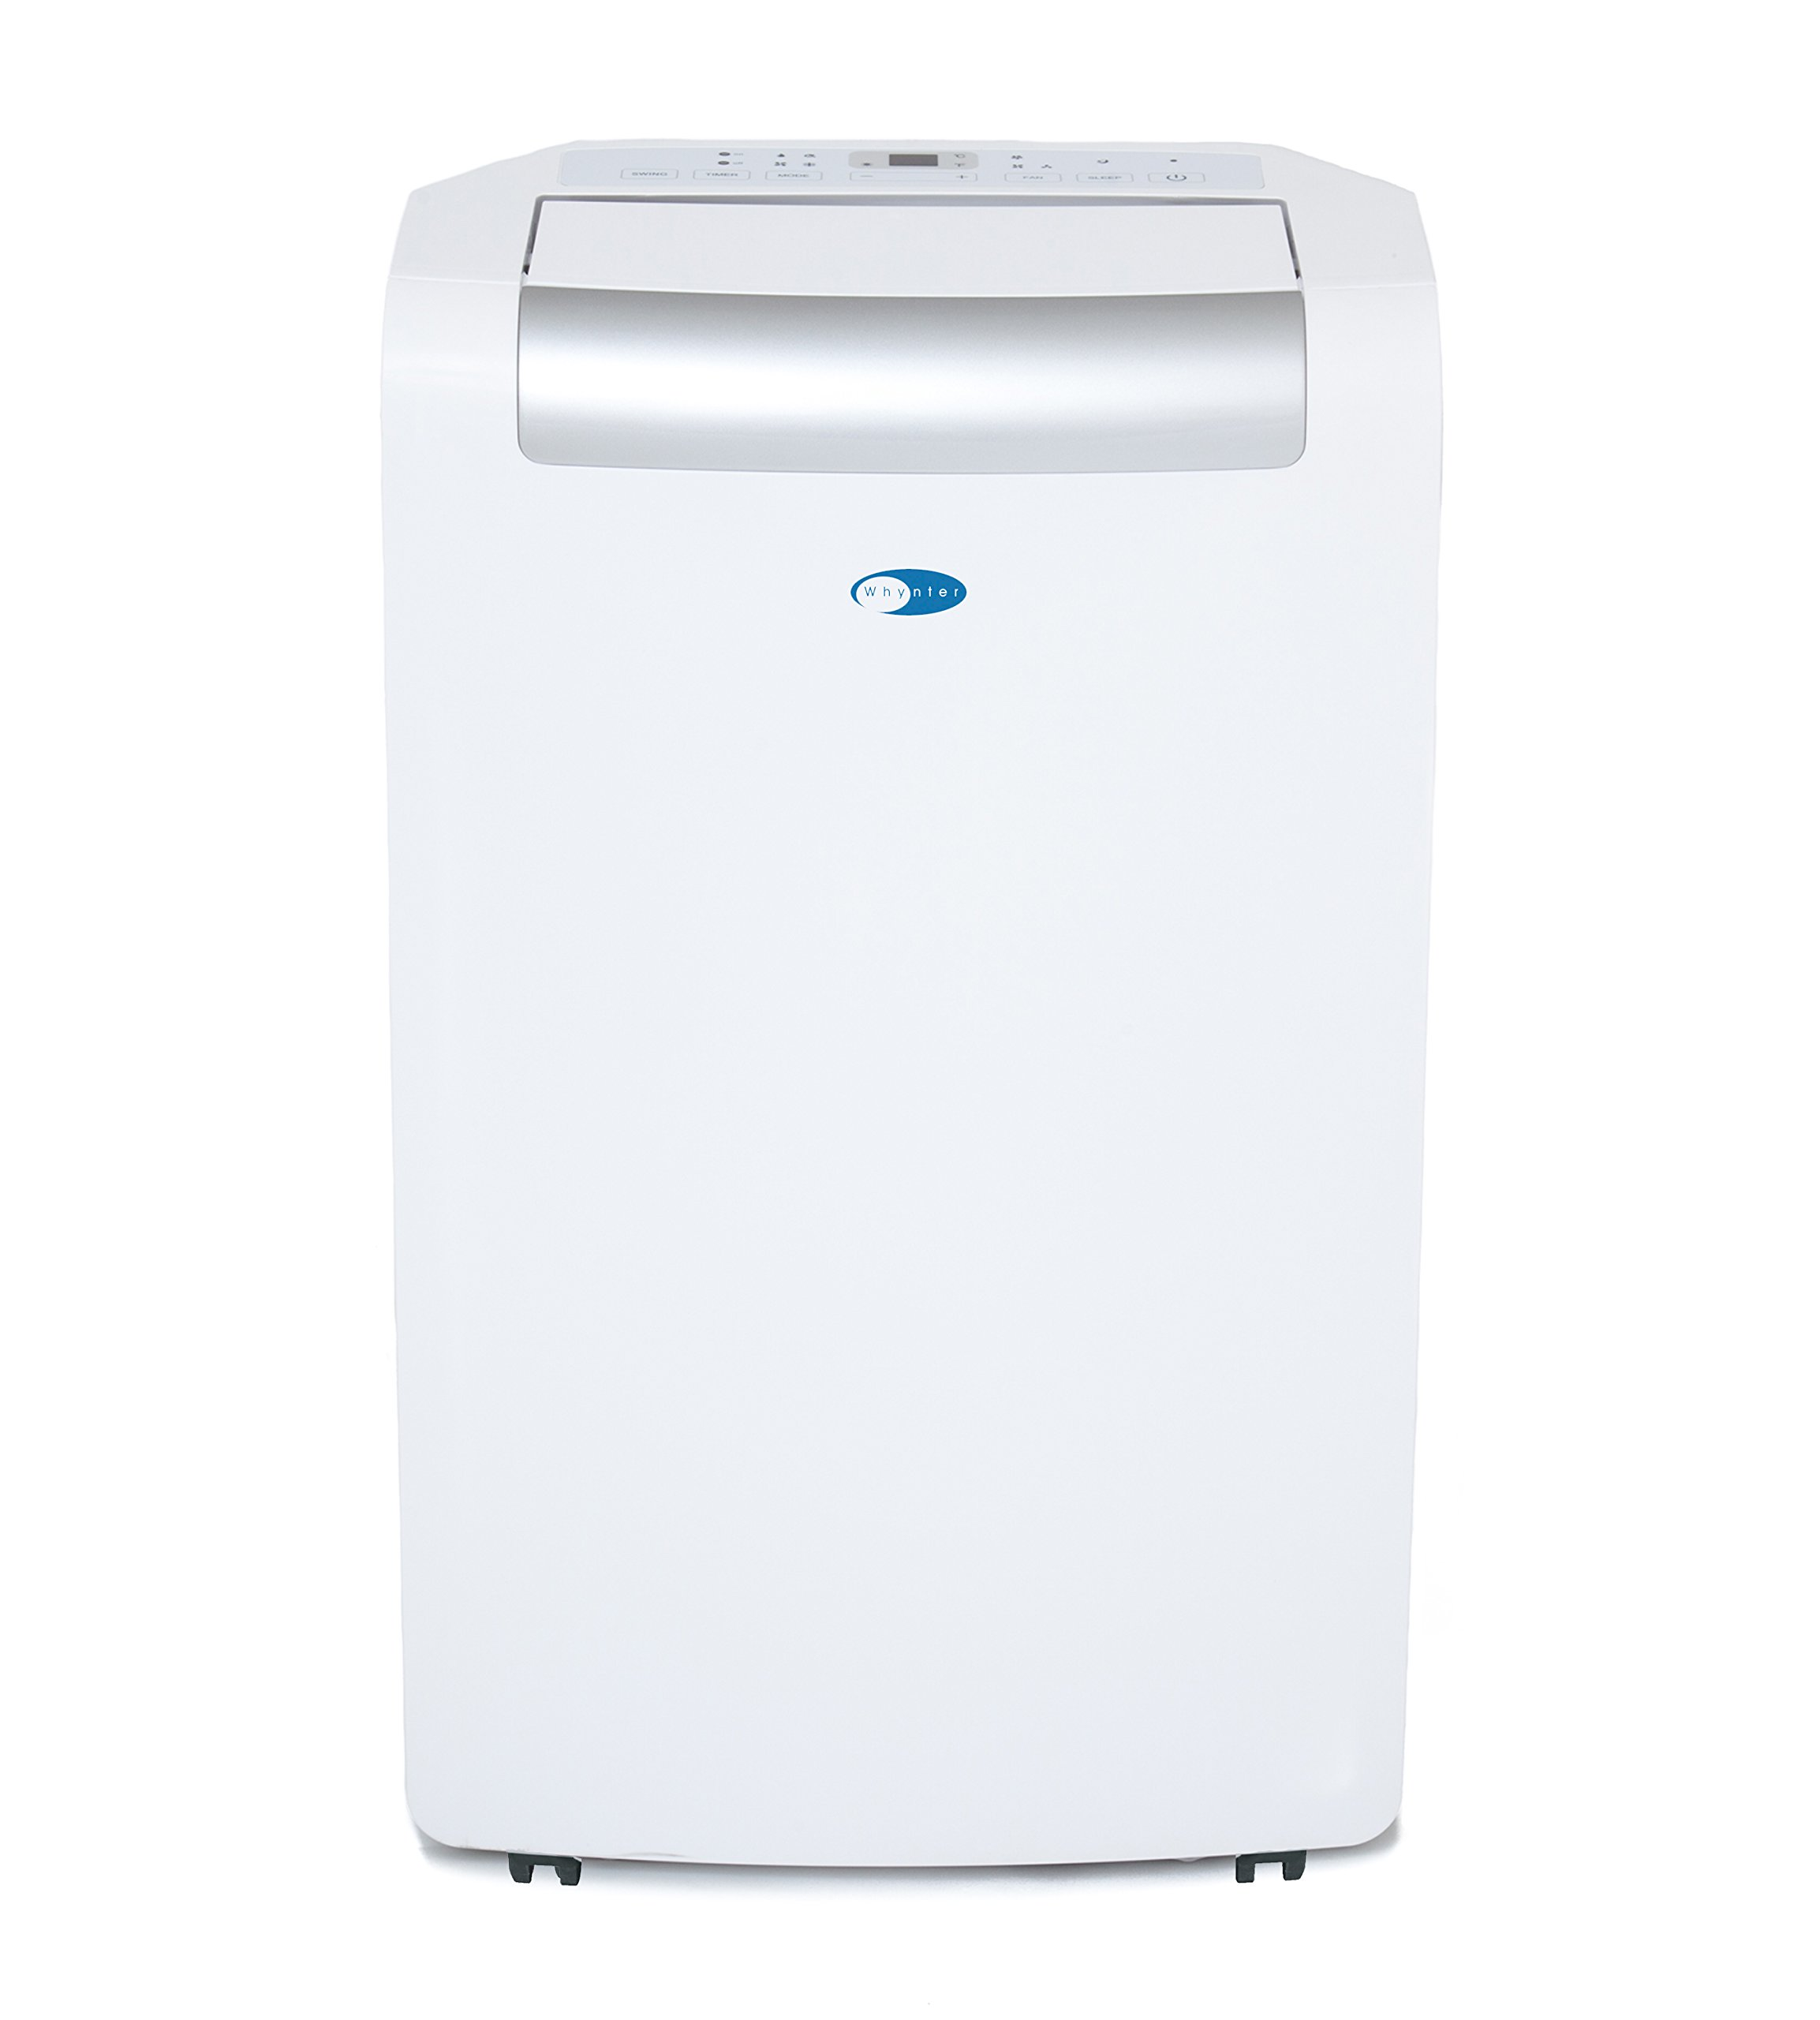 Whynter ARC-148MS 14,000 BTU Portable Air Conditioner, Dehumidifier, Fan with 3M and SilverShield Filter for Rooms up to 450 sq ft by Whynter